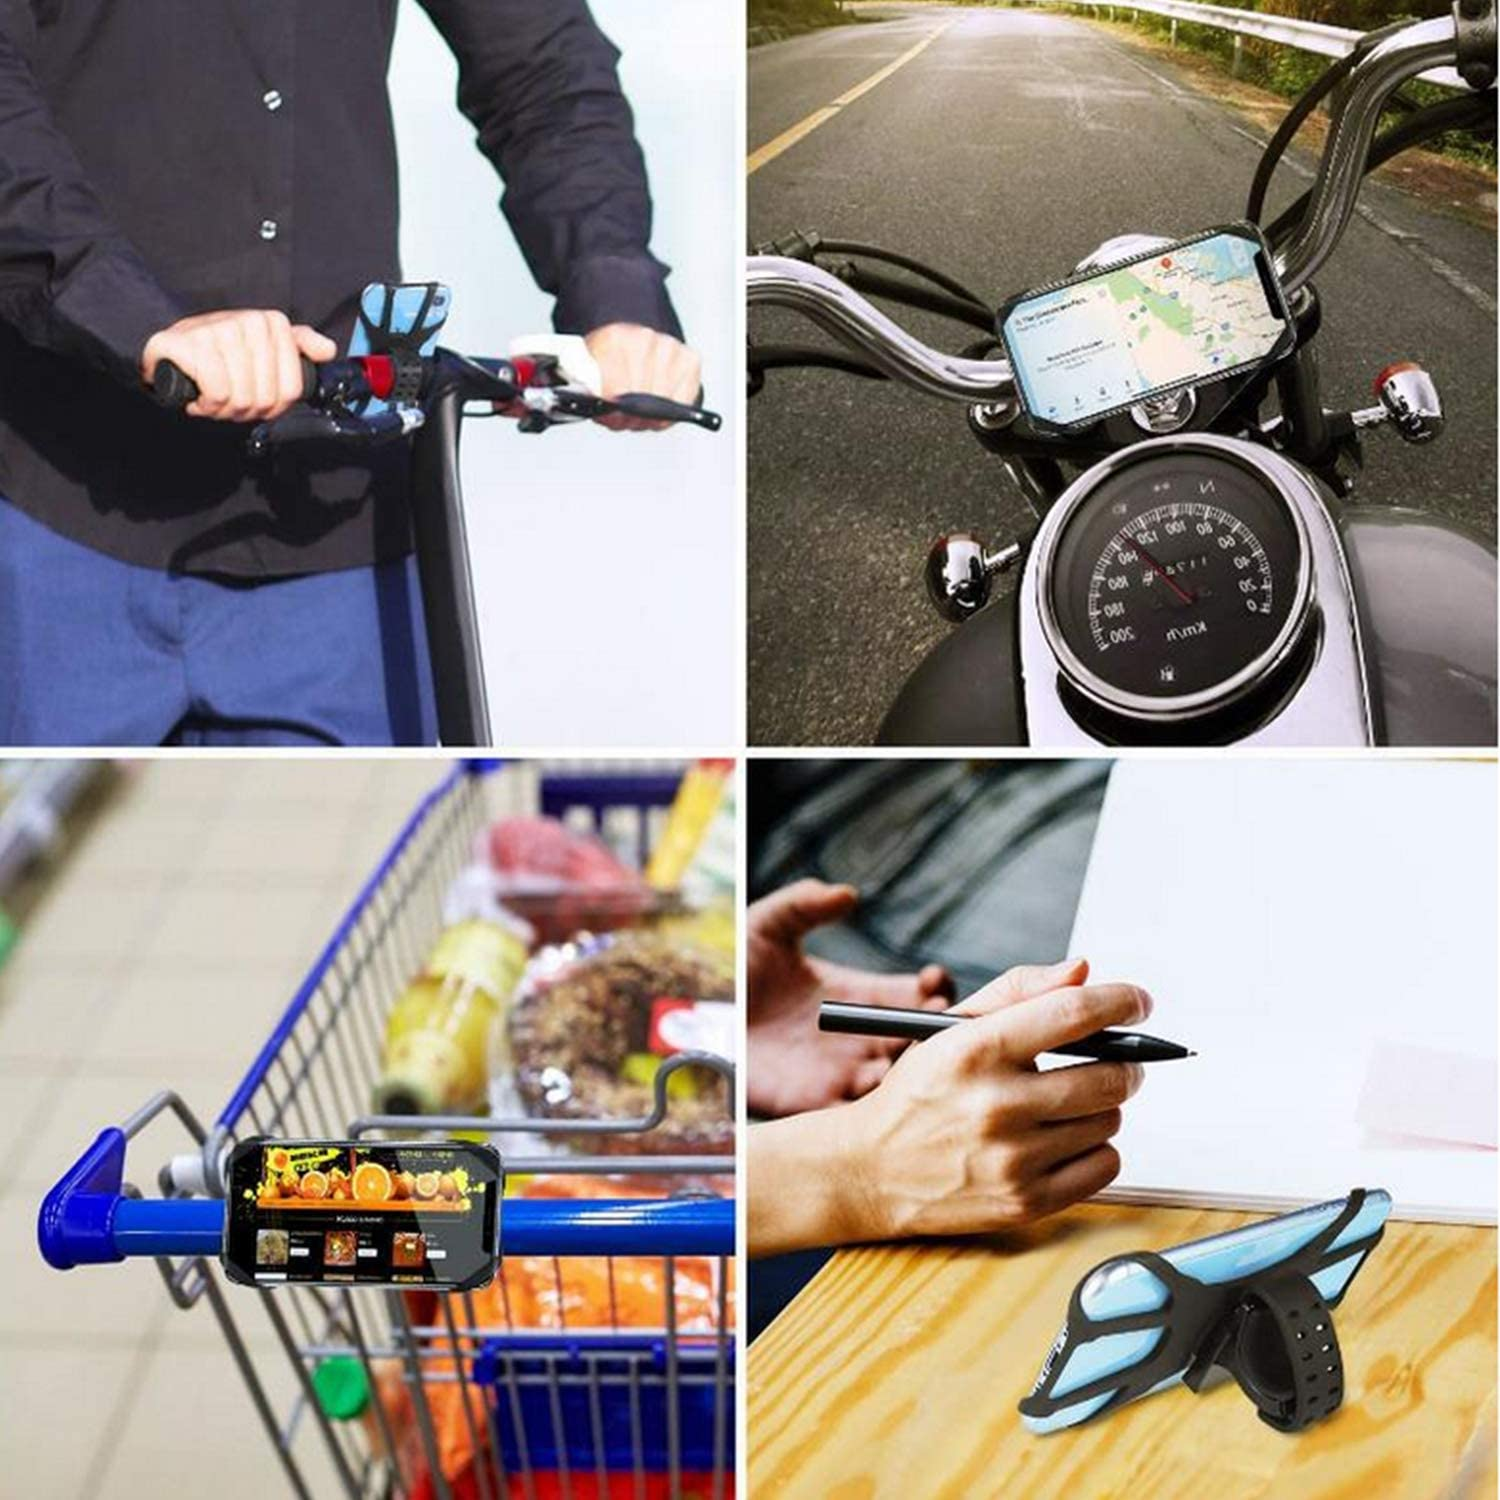 Samsung S10//S10e Bicycle Phone Mount LG Nubia 360/° Adjustable Universal Motorcycle Phone Mount Silicone Handlebar Cradle for iPhone 11 Pro Max//X//XS MAX//XR//8//8 Plus Google Pixel